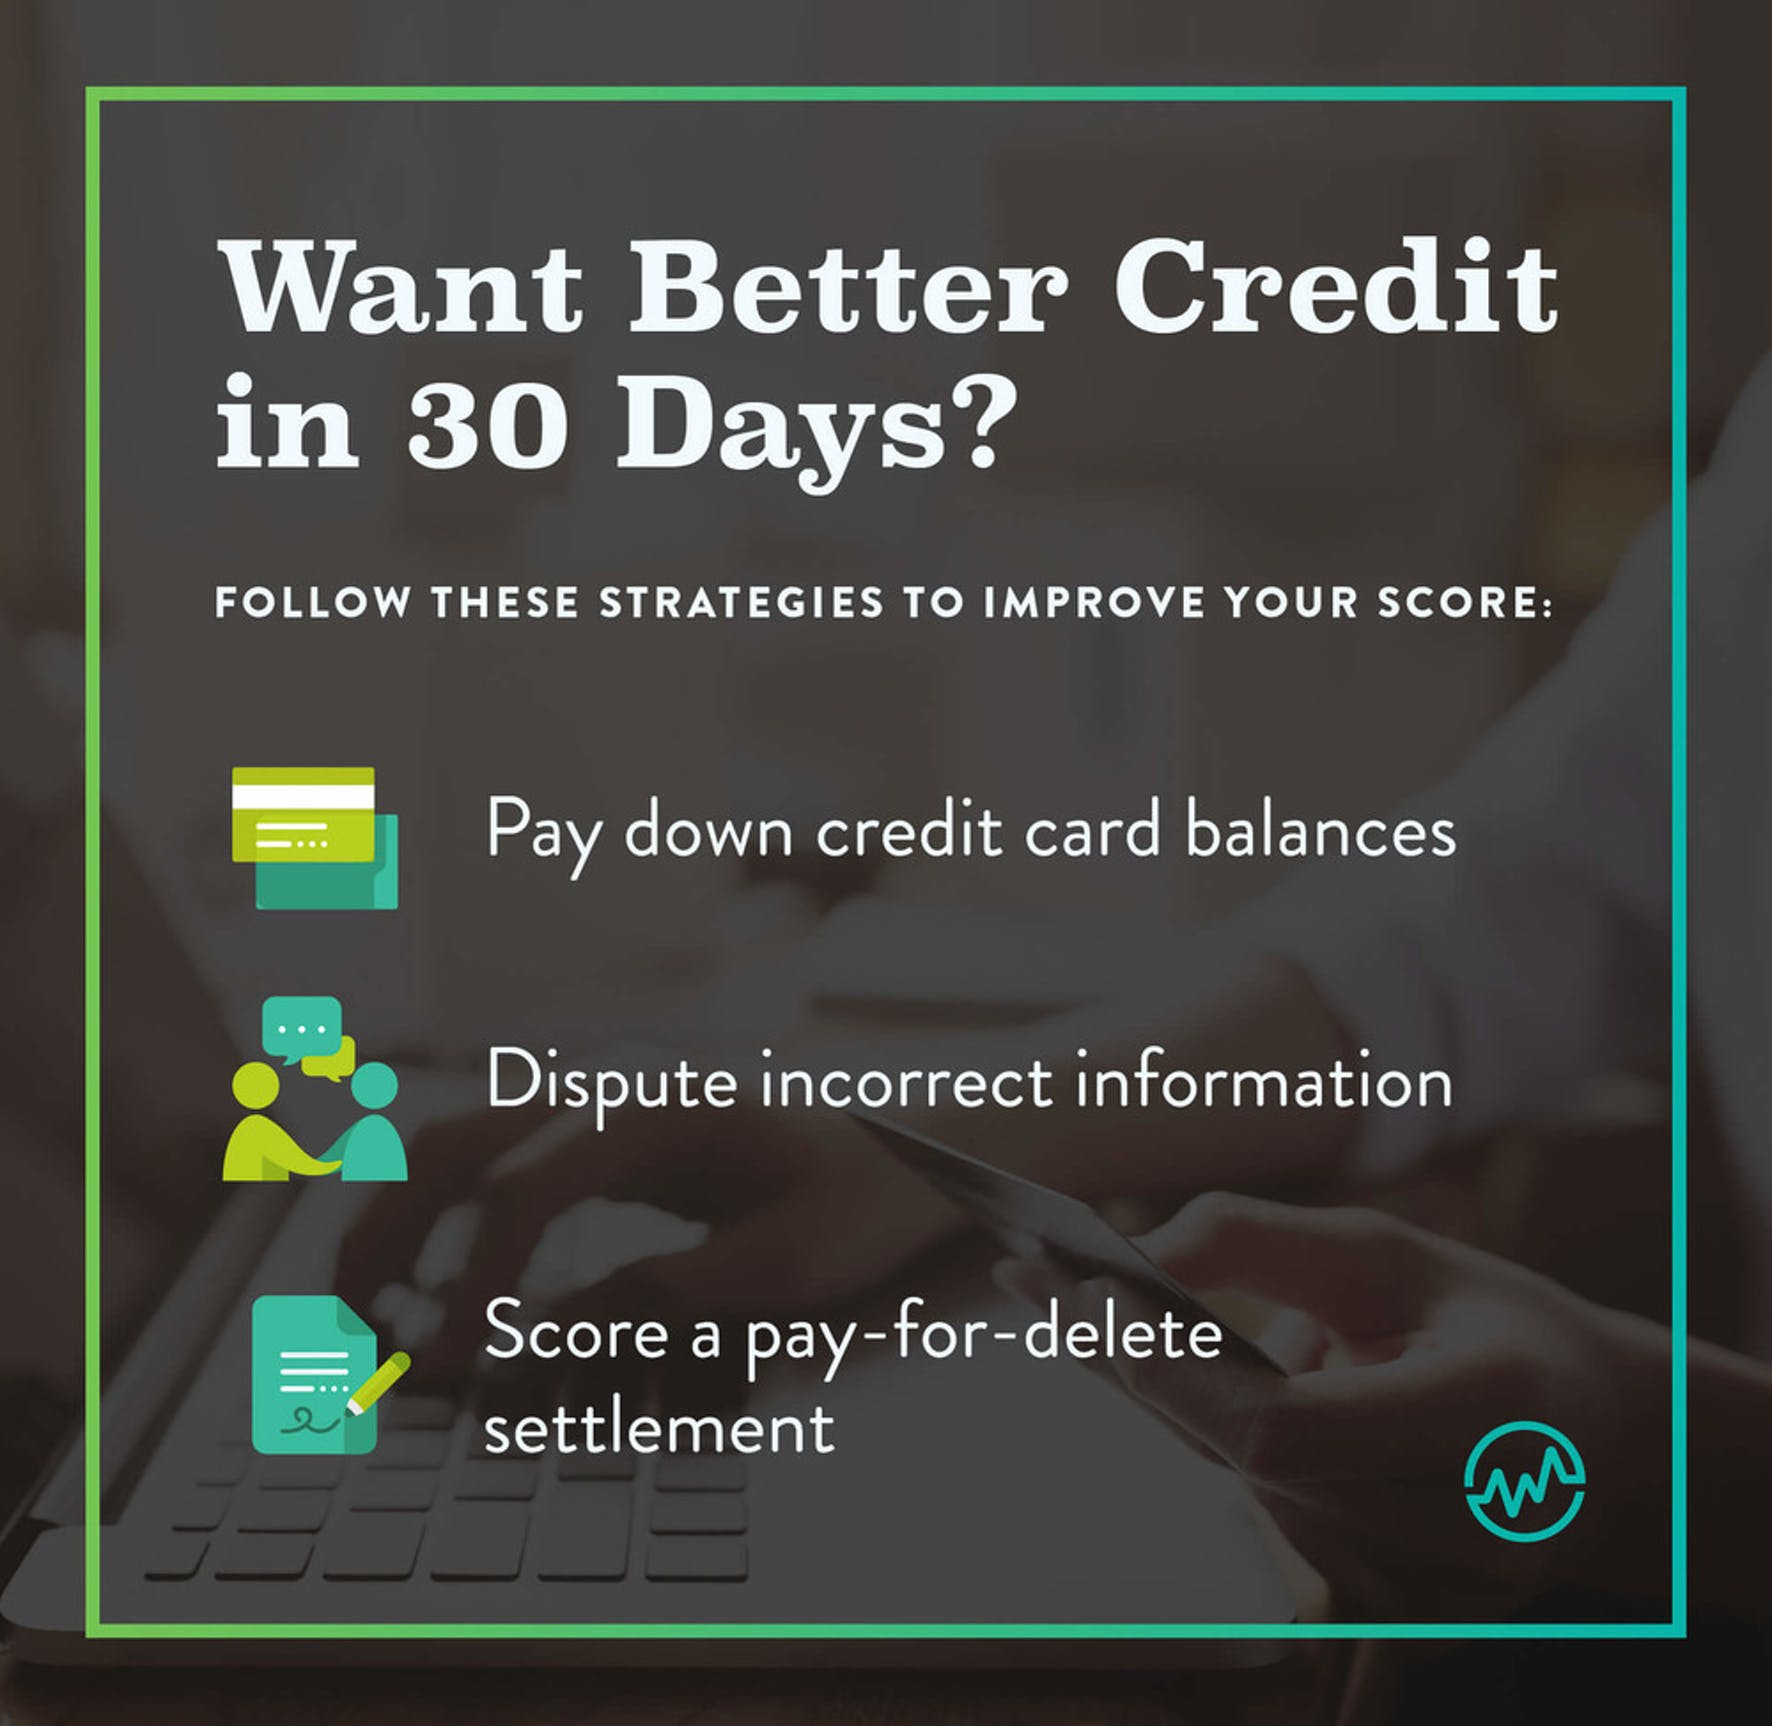 Infographic showing how to improve your credit score in 30 days